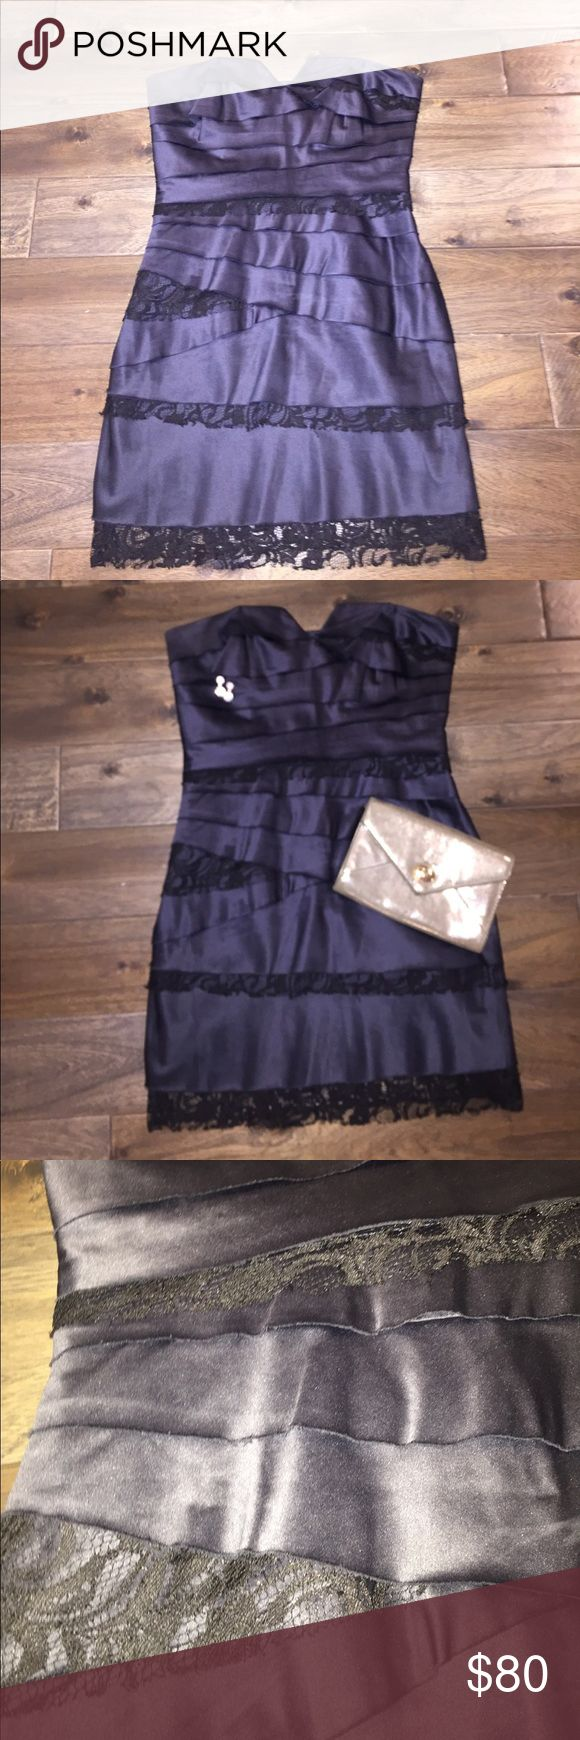 BCBG Strapless Cocktail Dress BCBGeneration dress in tiered layers of slate-gray satin and black lace. Strapless and formfitting with a sweetheart neckline and a hidden side zip. Worn once-great condition! Mid-thigh length. So elegant with some sparkly jewelry and a metallic clutch! BCBGeneration Dresses Mini